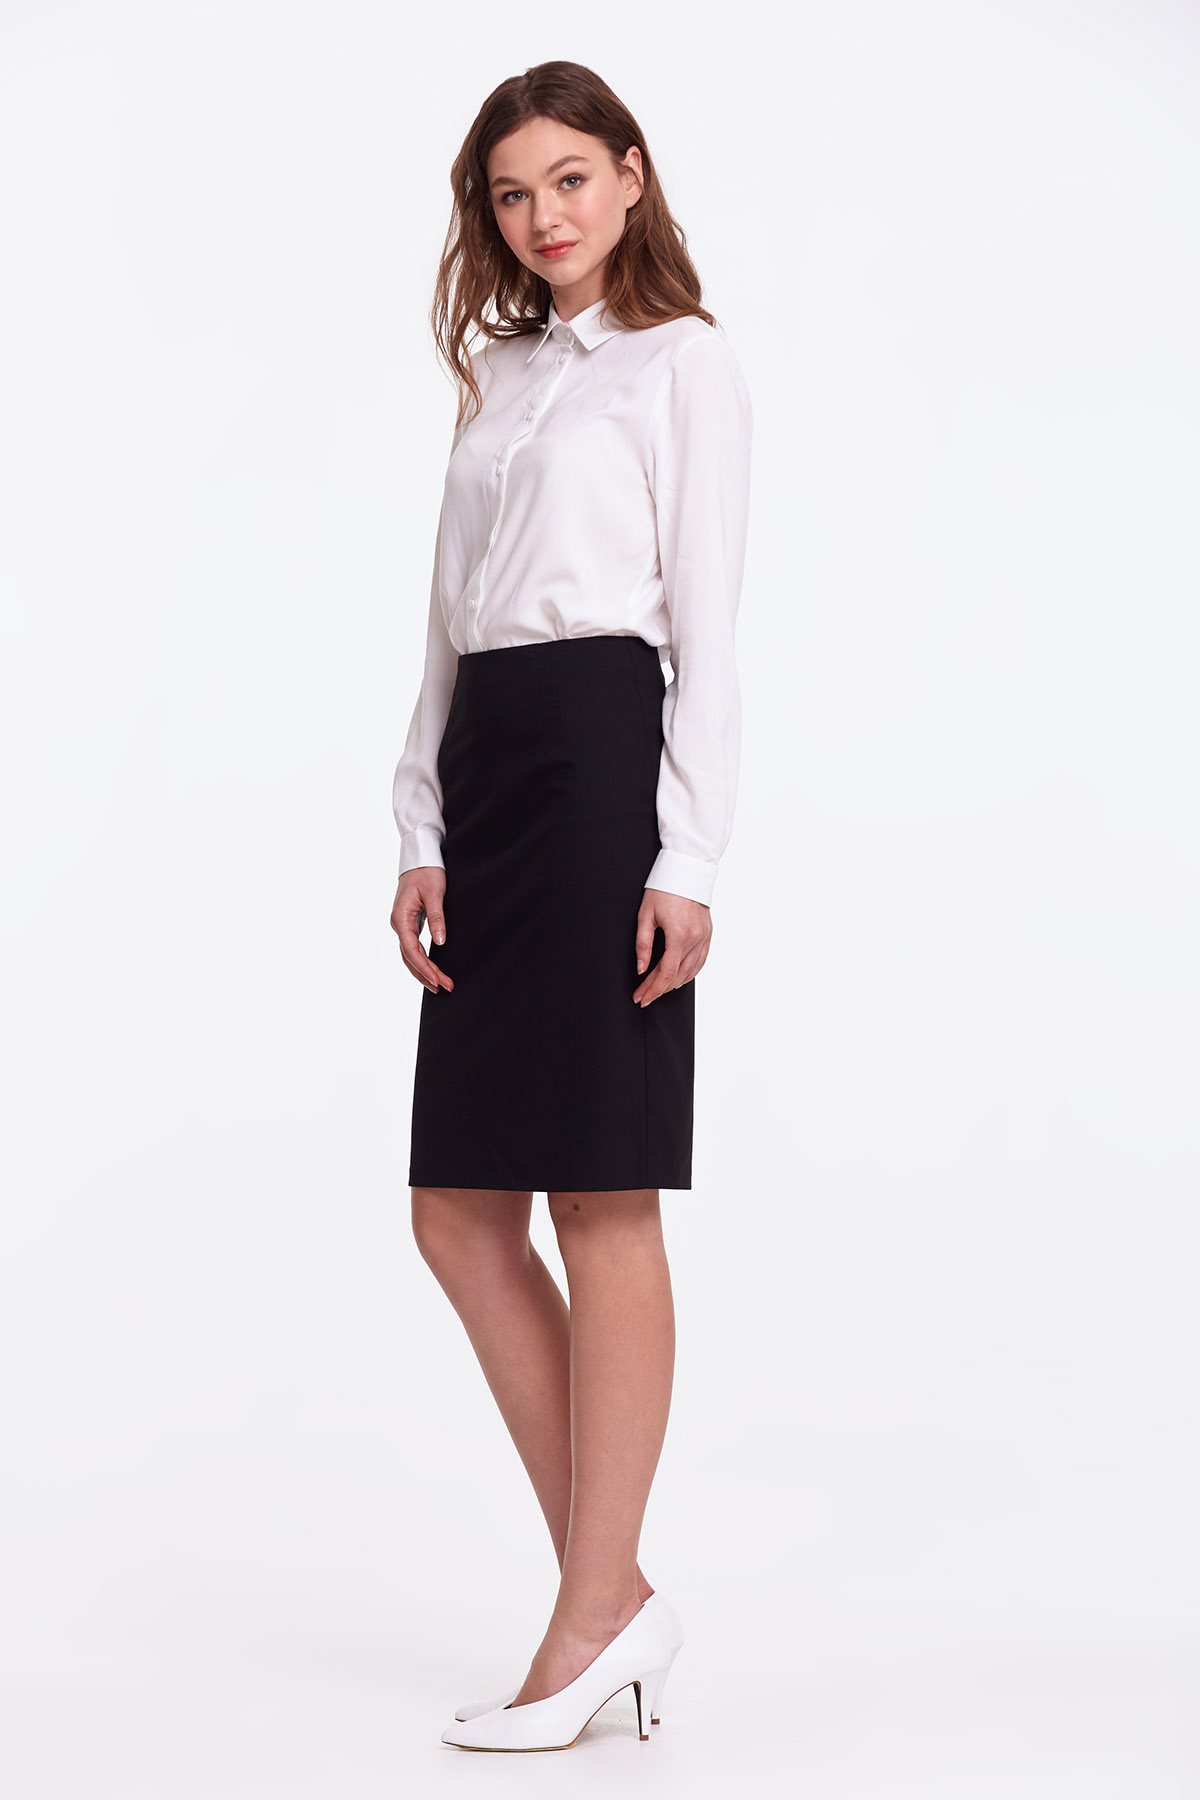 bf91d3b40 Black pencil skirt photo 3 - MustHave online store